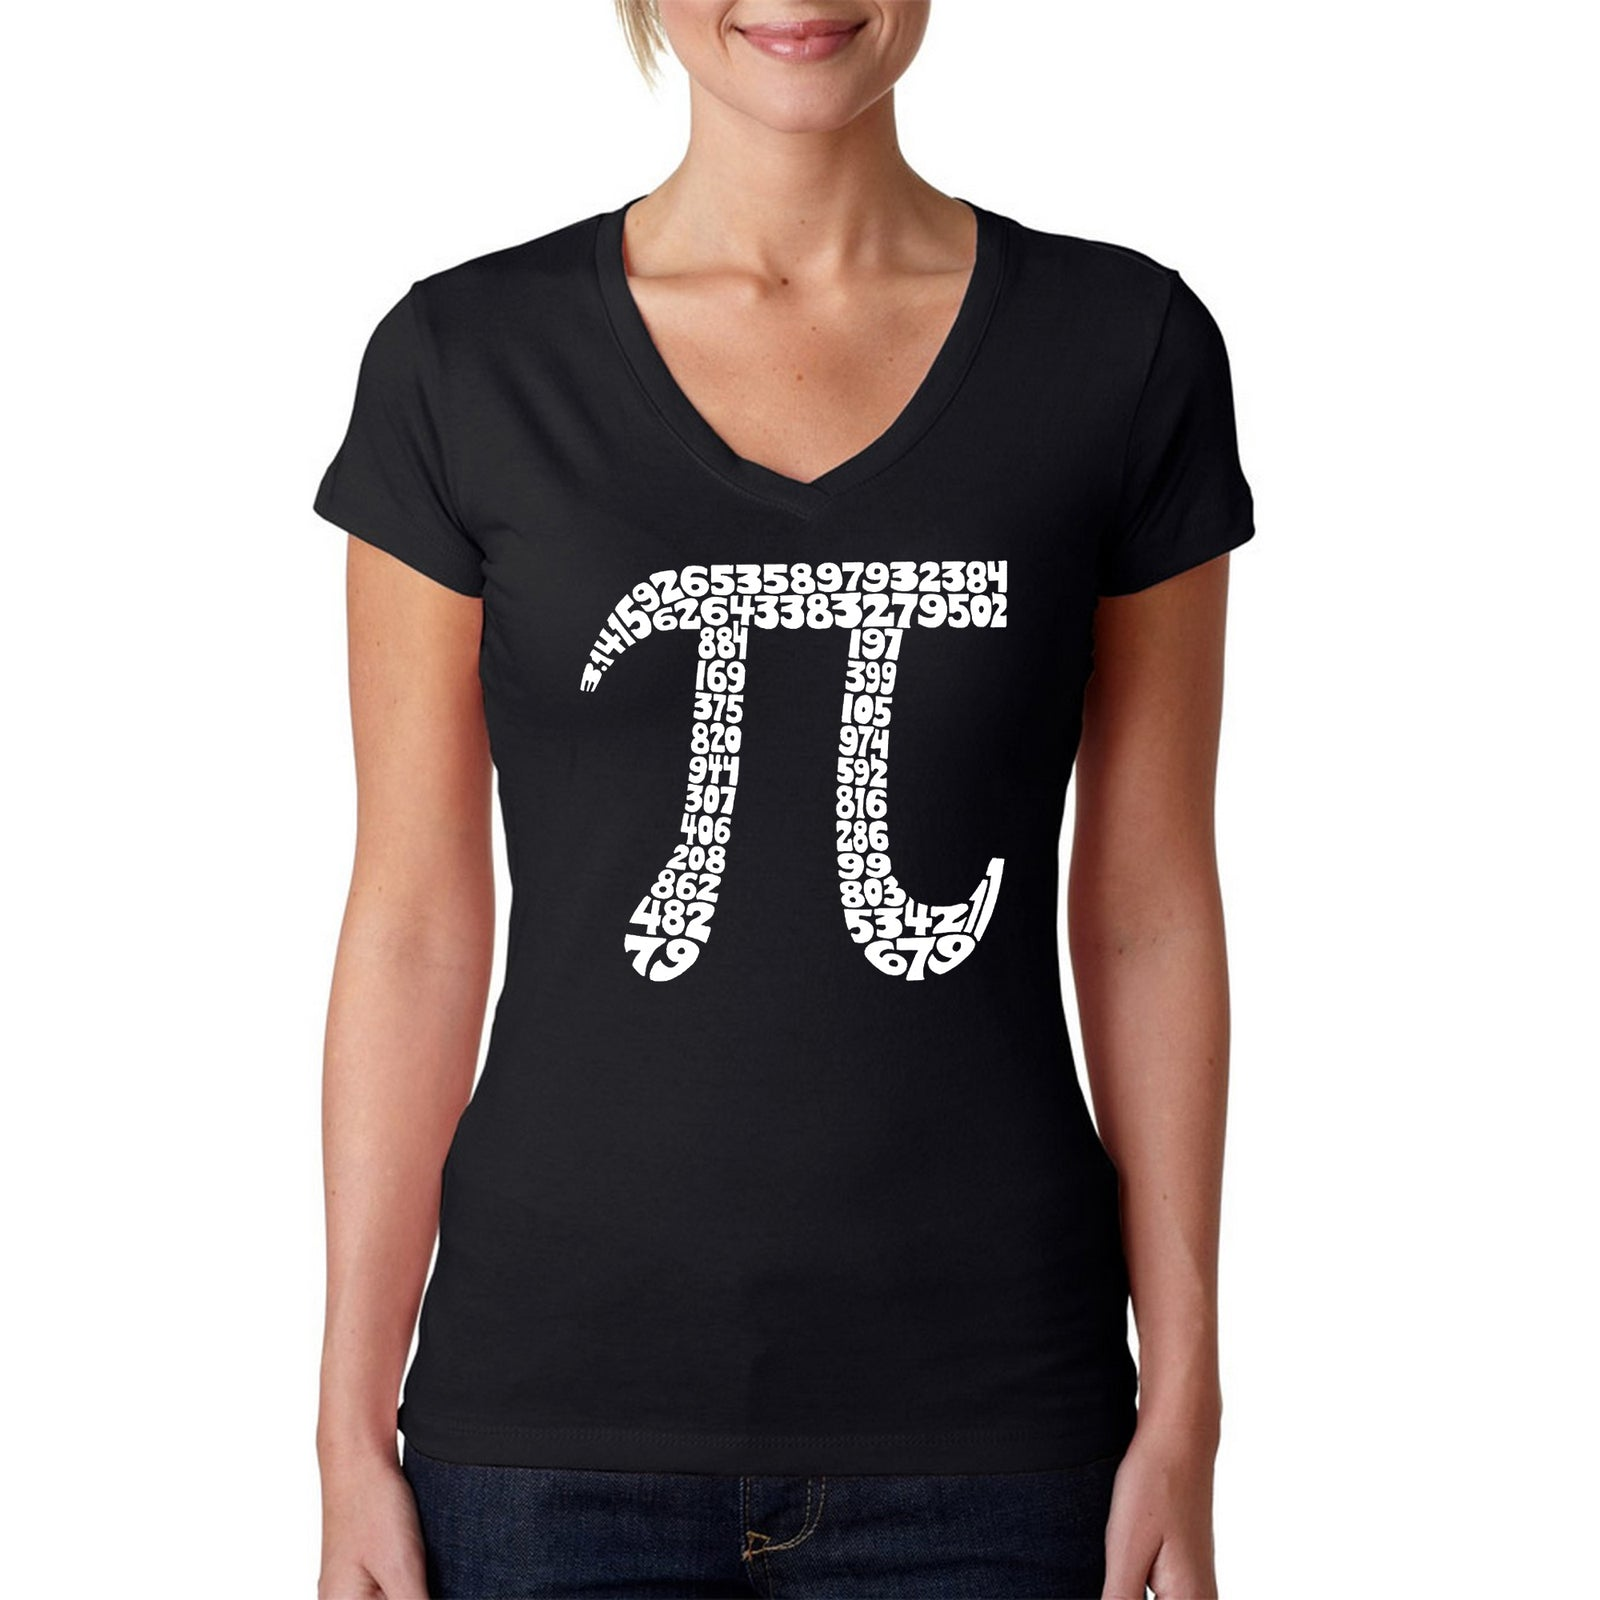 Women's V-Neck T-Shirt - THE FIRST 100 DIGITS OF PI